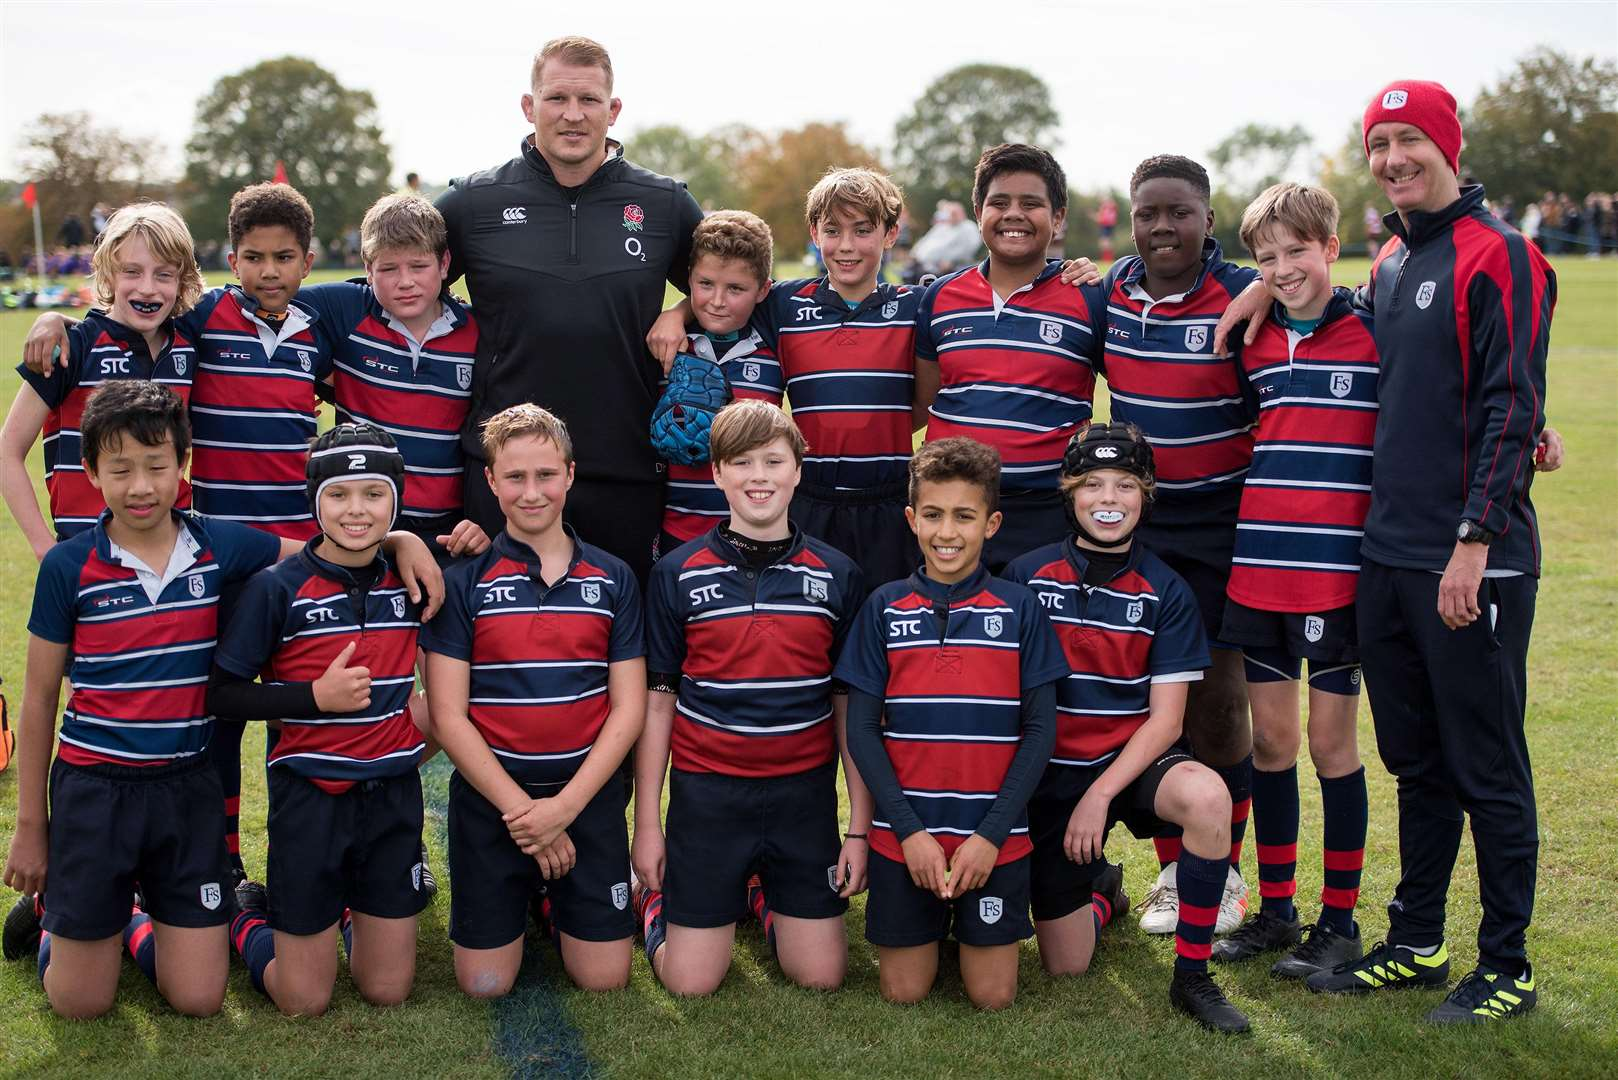 GREAT FINBOROUGH: England Rugby Captain Dylan Hartley visiting school .Finborough School, Finborough Hall, Great Finborough.On Sunday 7th October Finborough School have their 10th annual community rugby festival we are proud to welcome England Rugby Captain Dylan Hartley to address the young players and present the awards. Picture Mark Westley. (4696343)